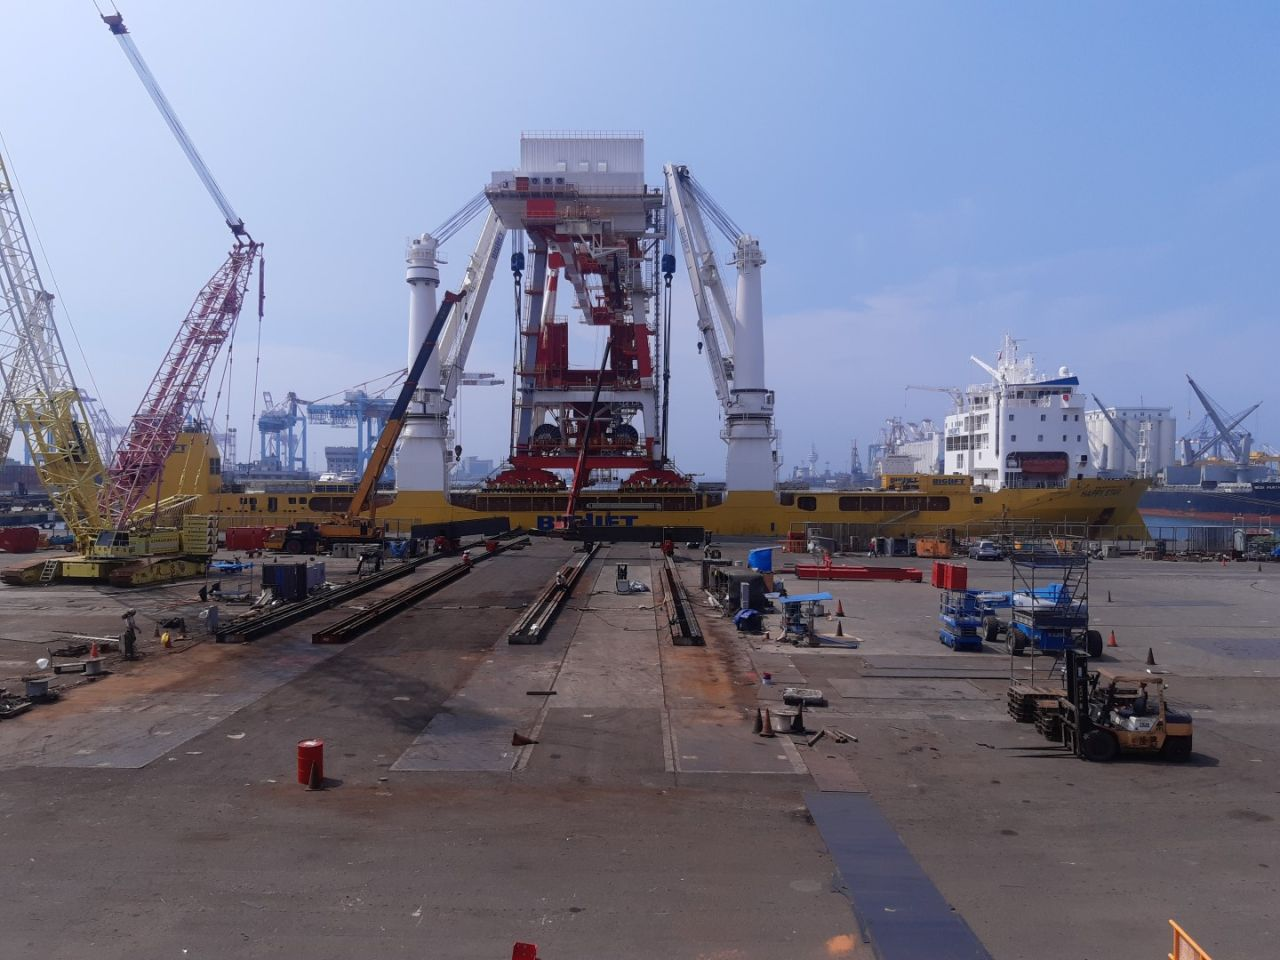 BigLift transports and installs two 1700-tonne cranes